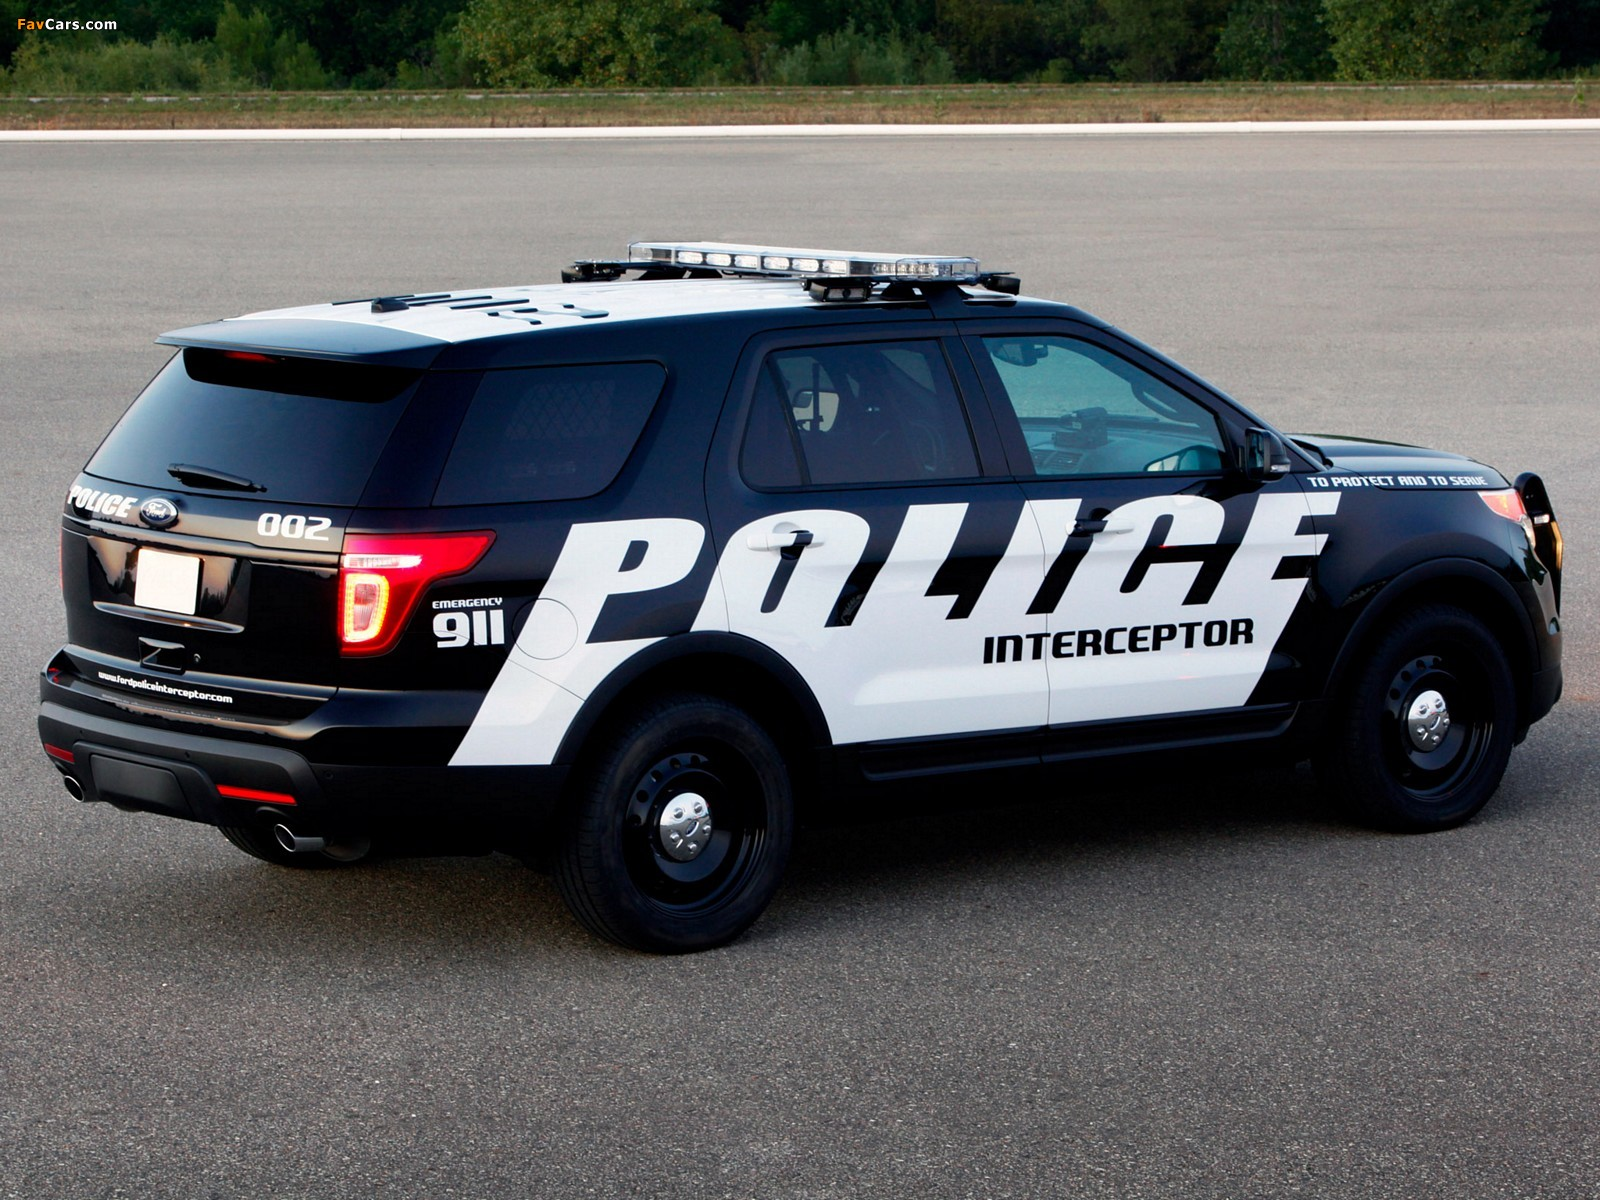 Ford Police Interceptor Utility 2010 images (1600 x 1200)